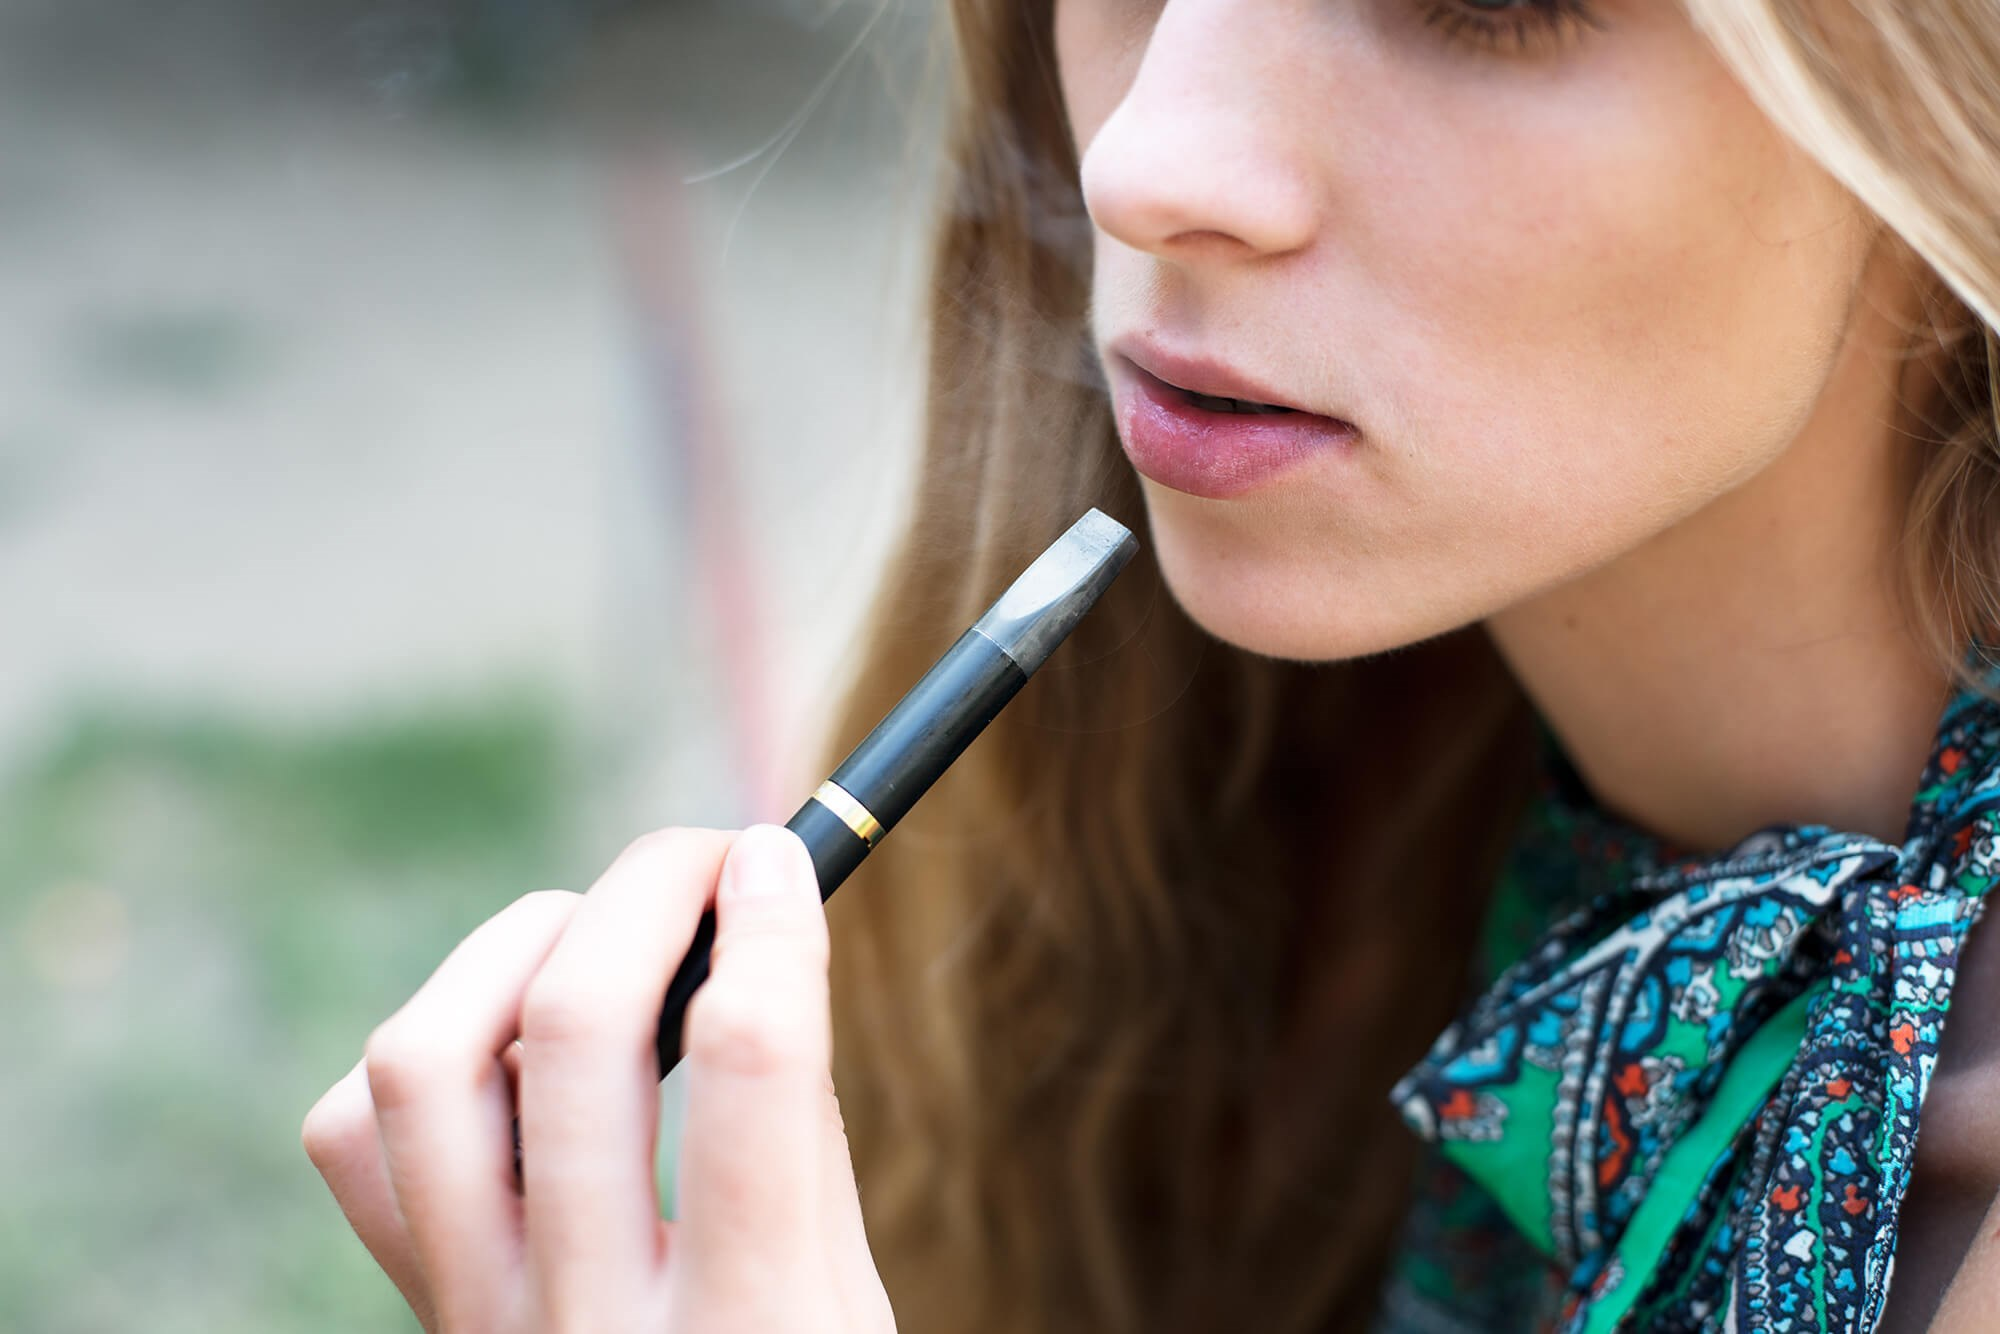 Although overall e-cigarette use is becoming less common among US adults, use increased among never-smokers during the same period.